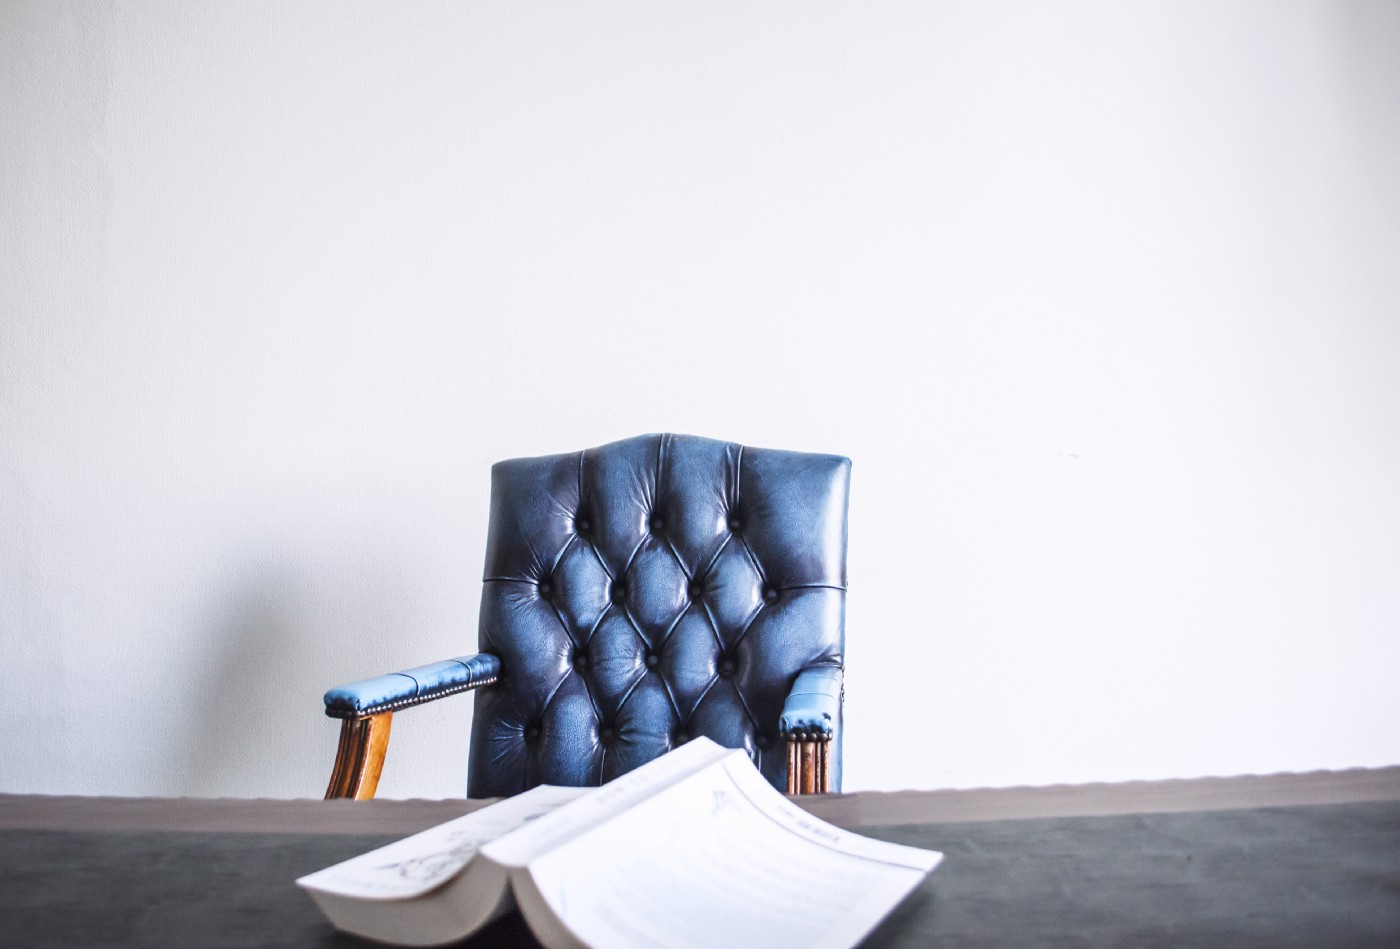 Opened book facing down on a desk in front of an empty blue leather chair